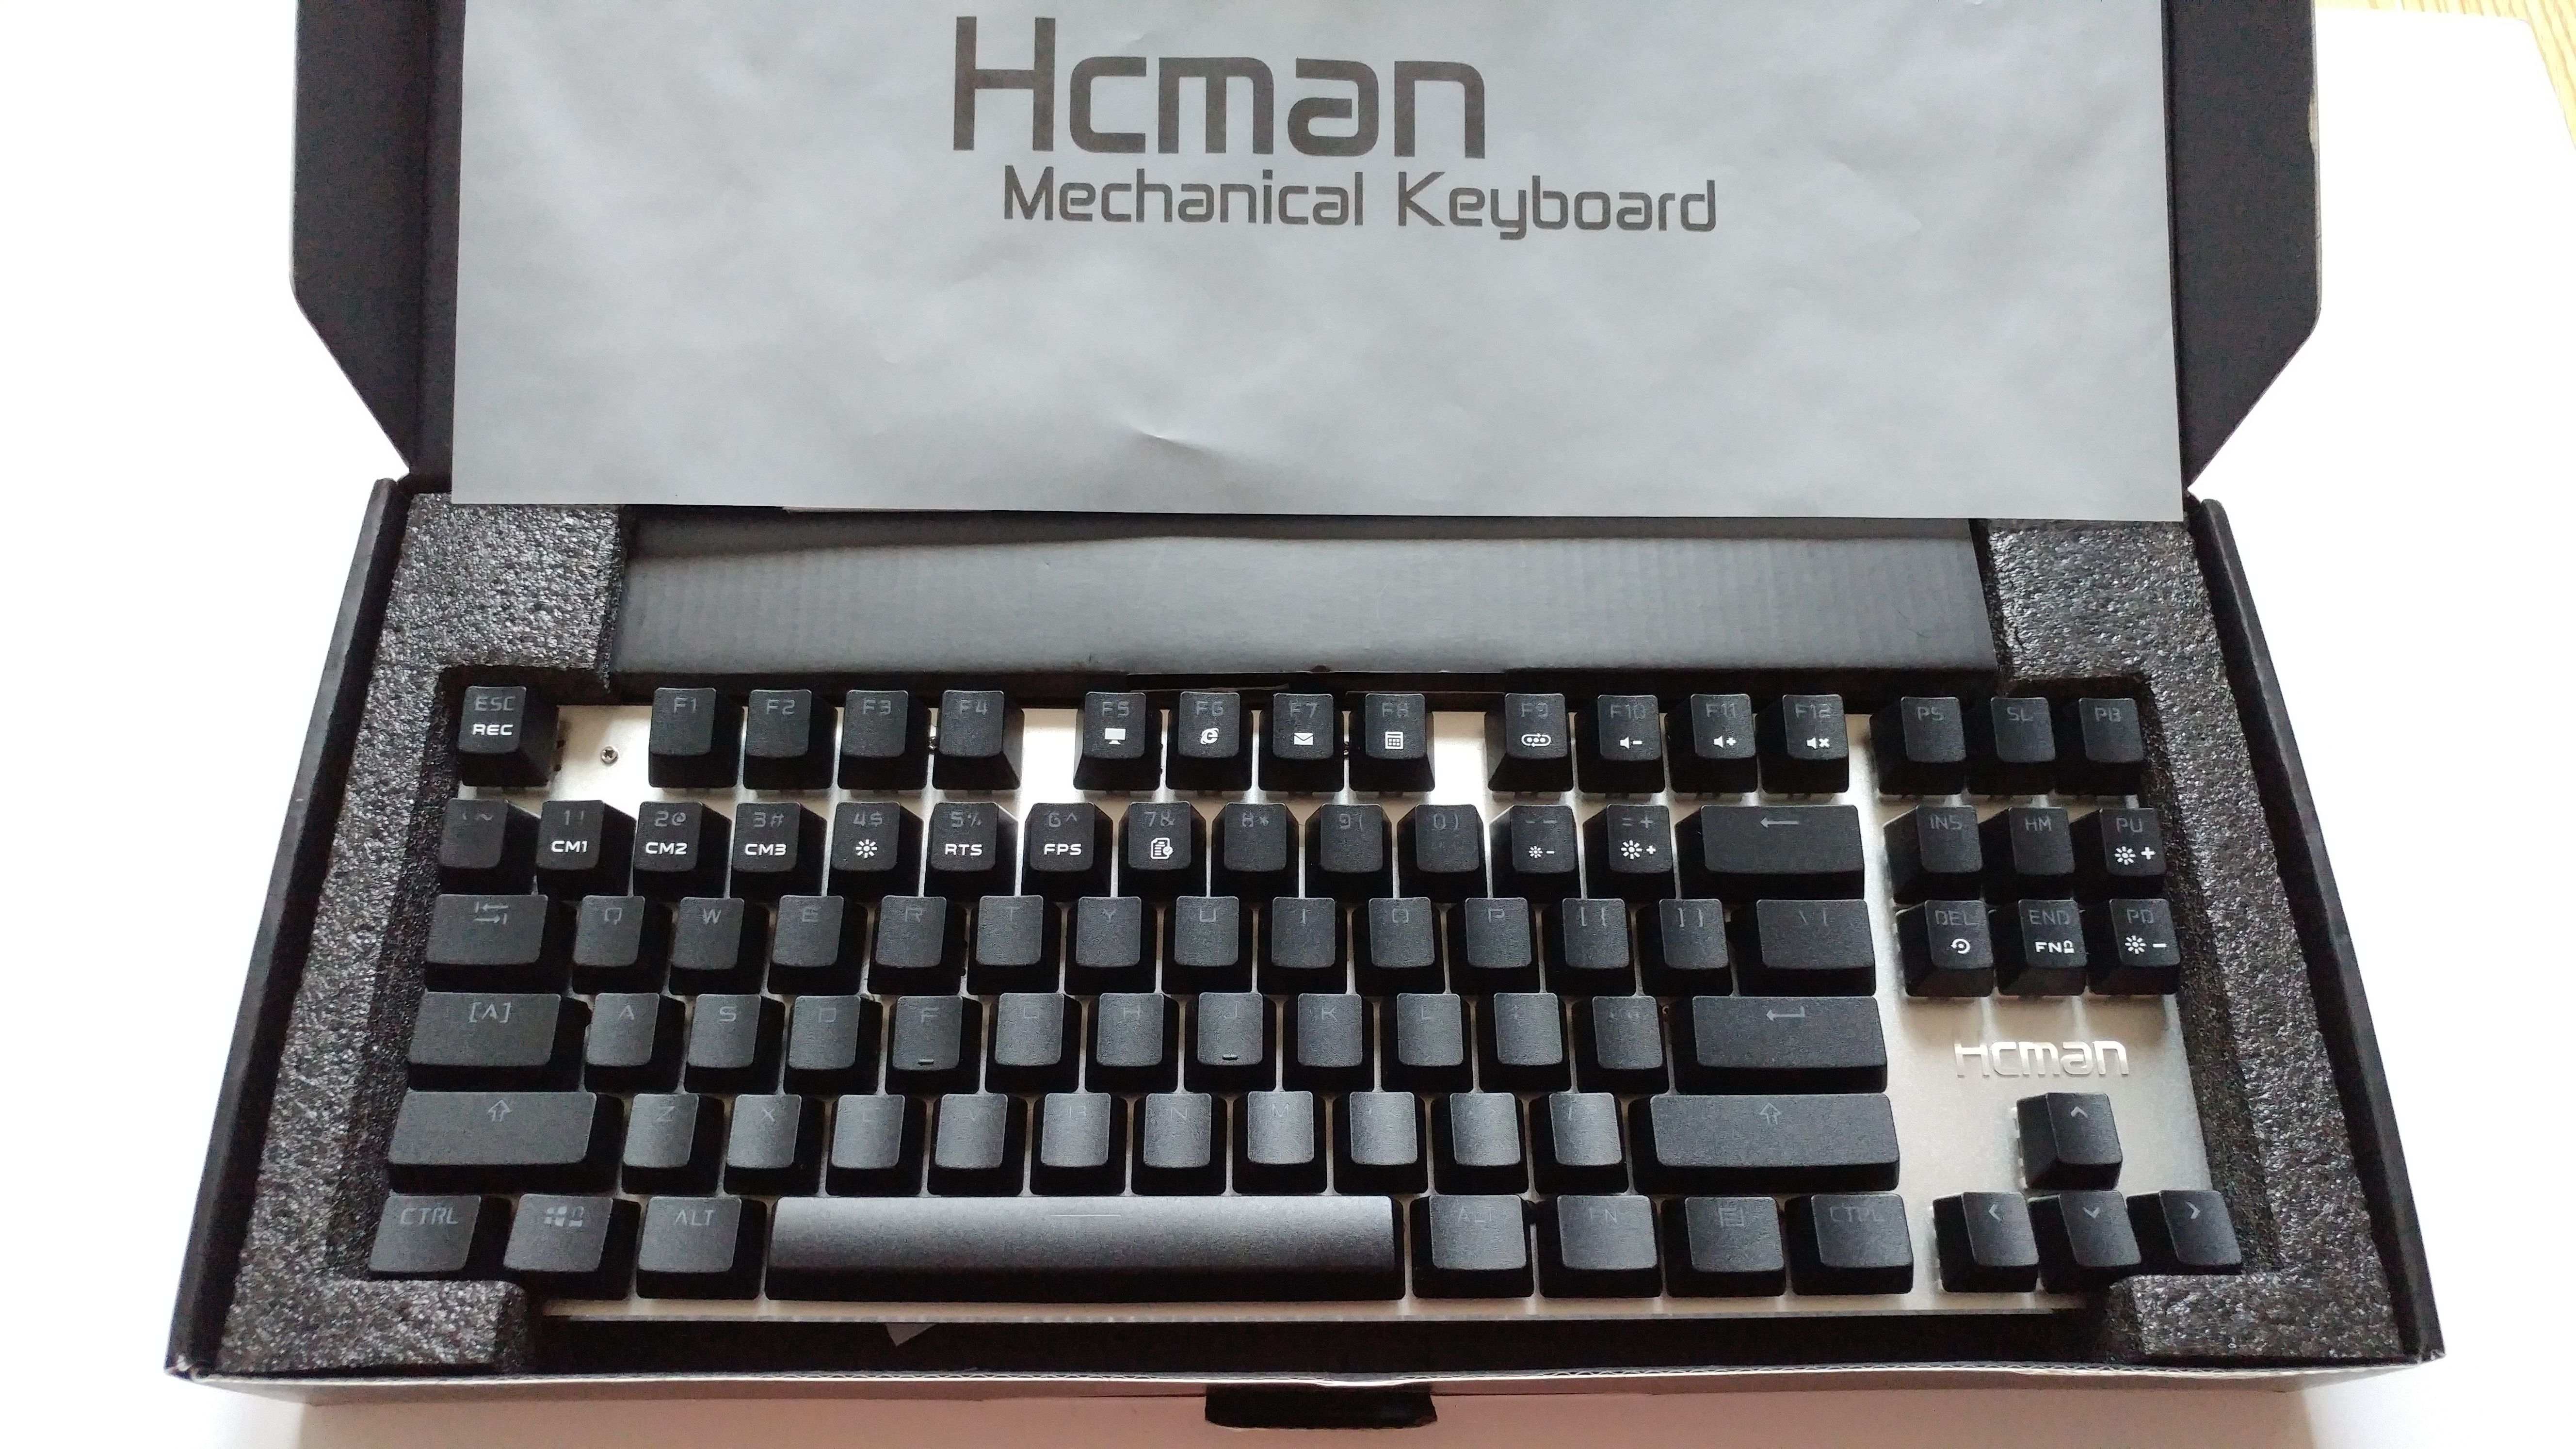 eb684bd59cd The Hcman Gaming Keyboard: An Inexpensively Reliable Mechanical Keyboard! |  Games With Coffee